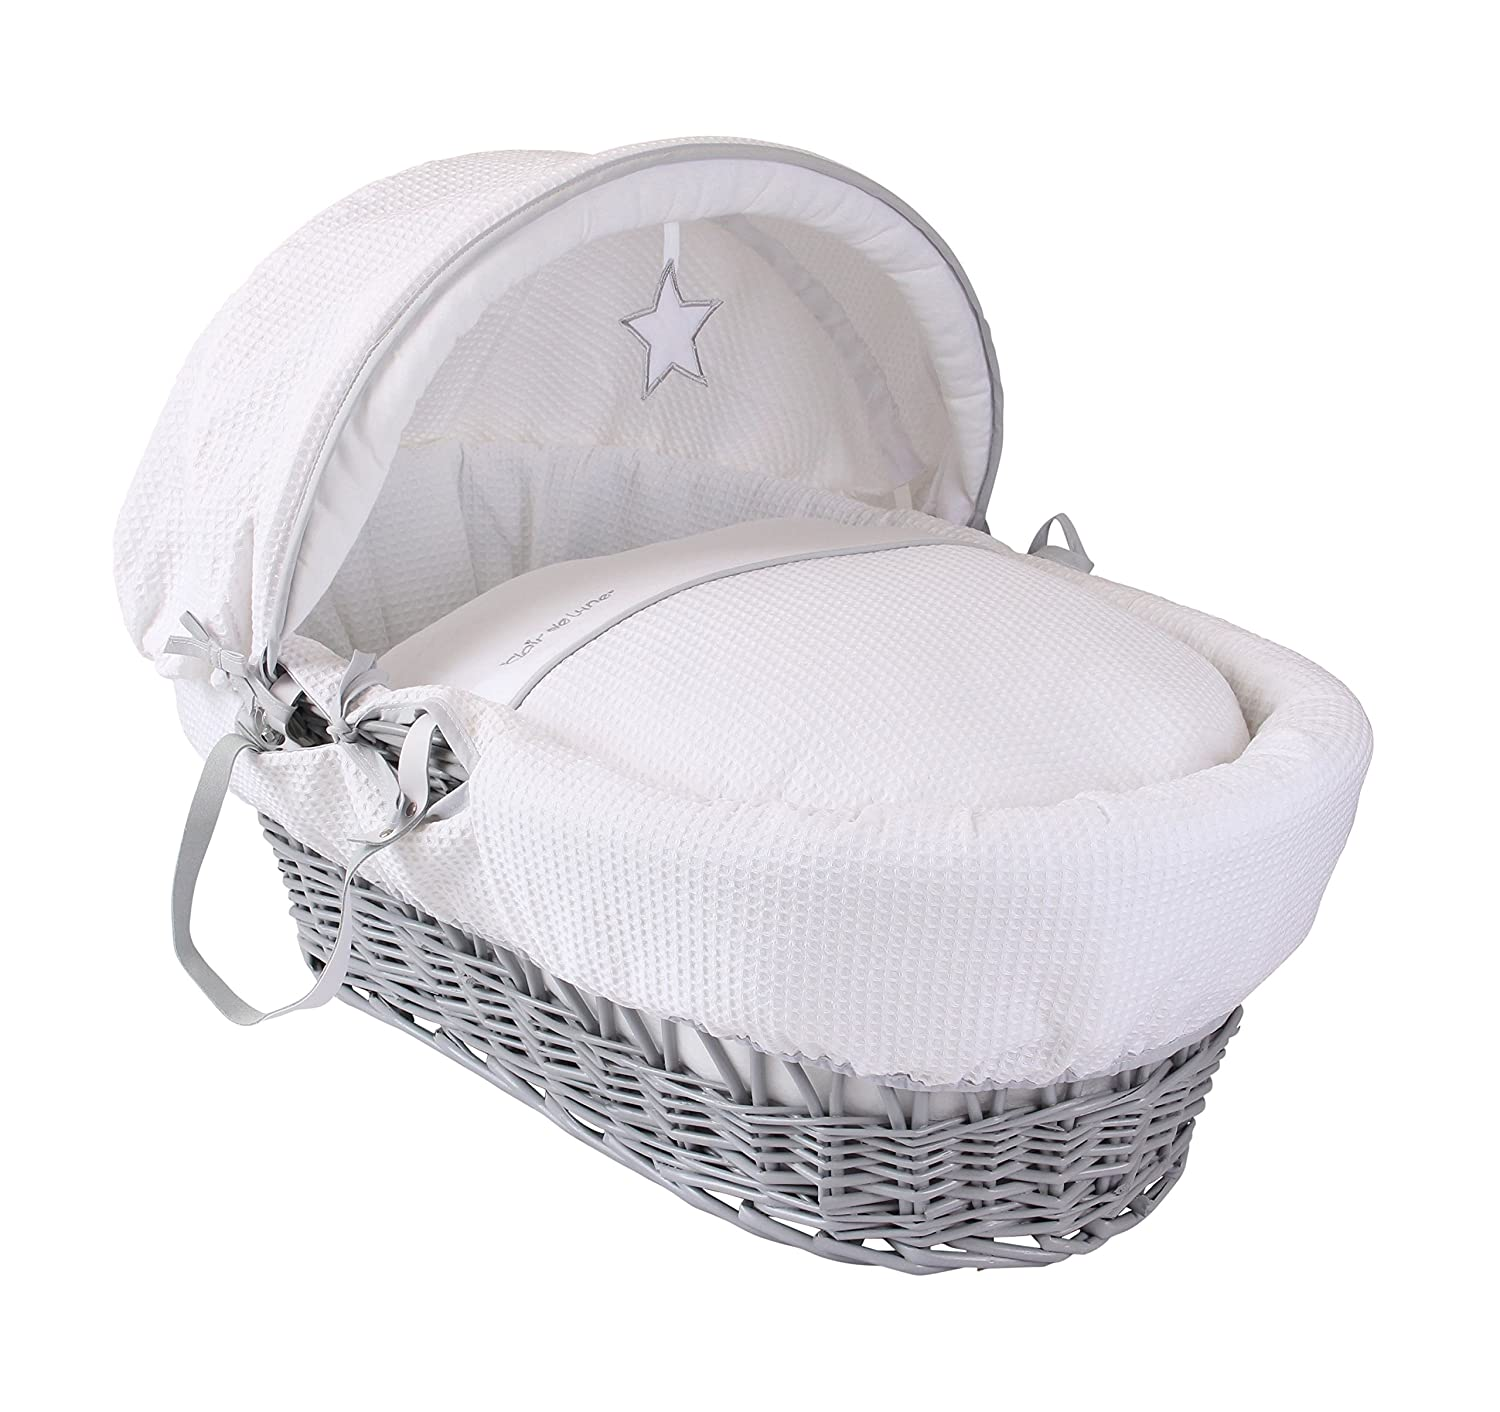 Clair de Lune Silver Lining Grey Wicker Moses Basket inc. bedding, mattress & adjustable hood (White) CL5419G